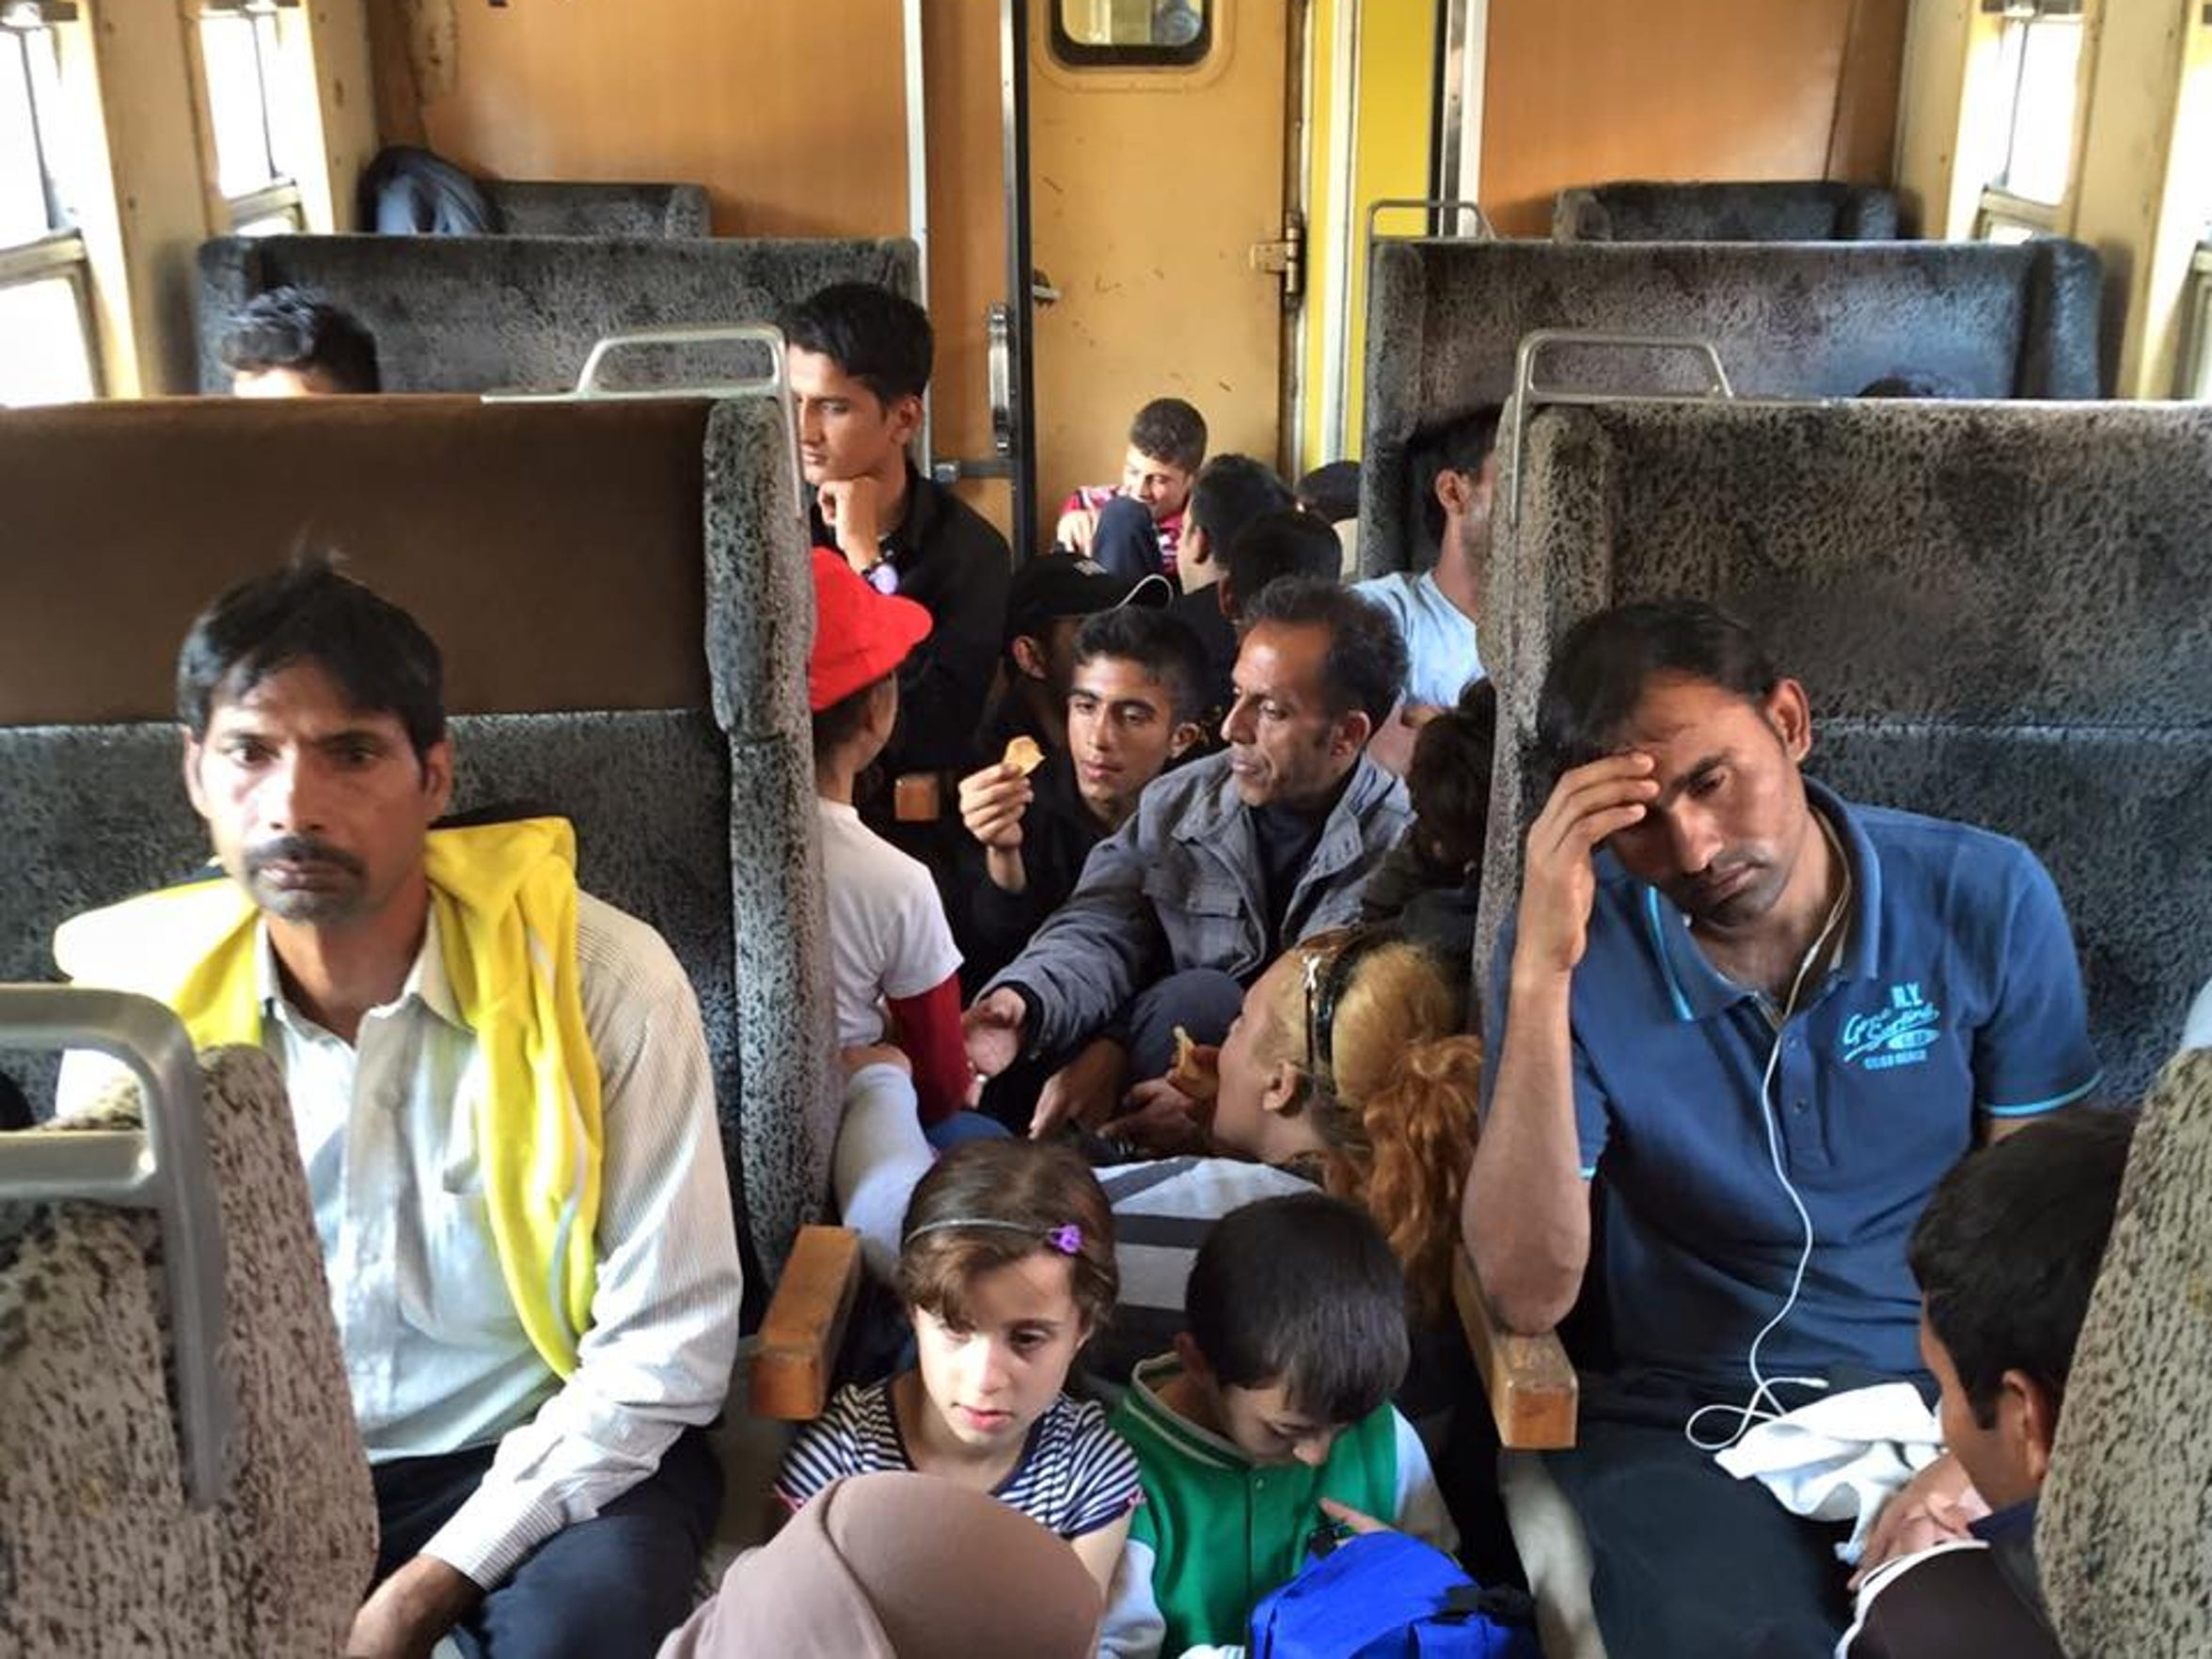 Migrants and refugees crammed on a train to Serbia on Sept. 21, 2015.